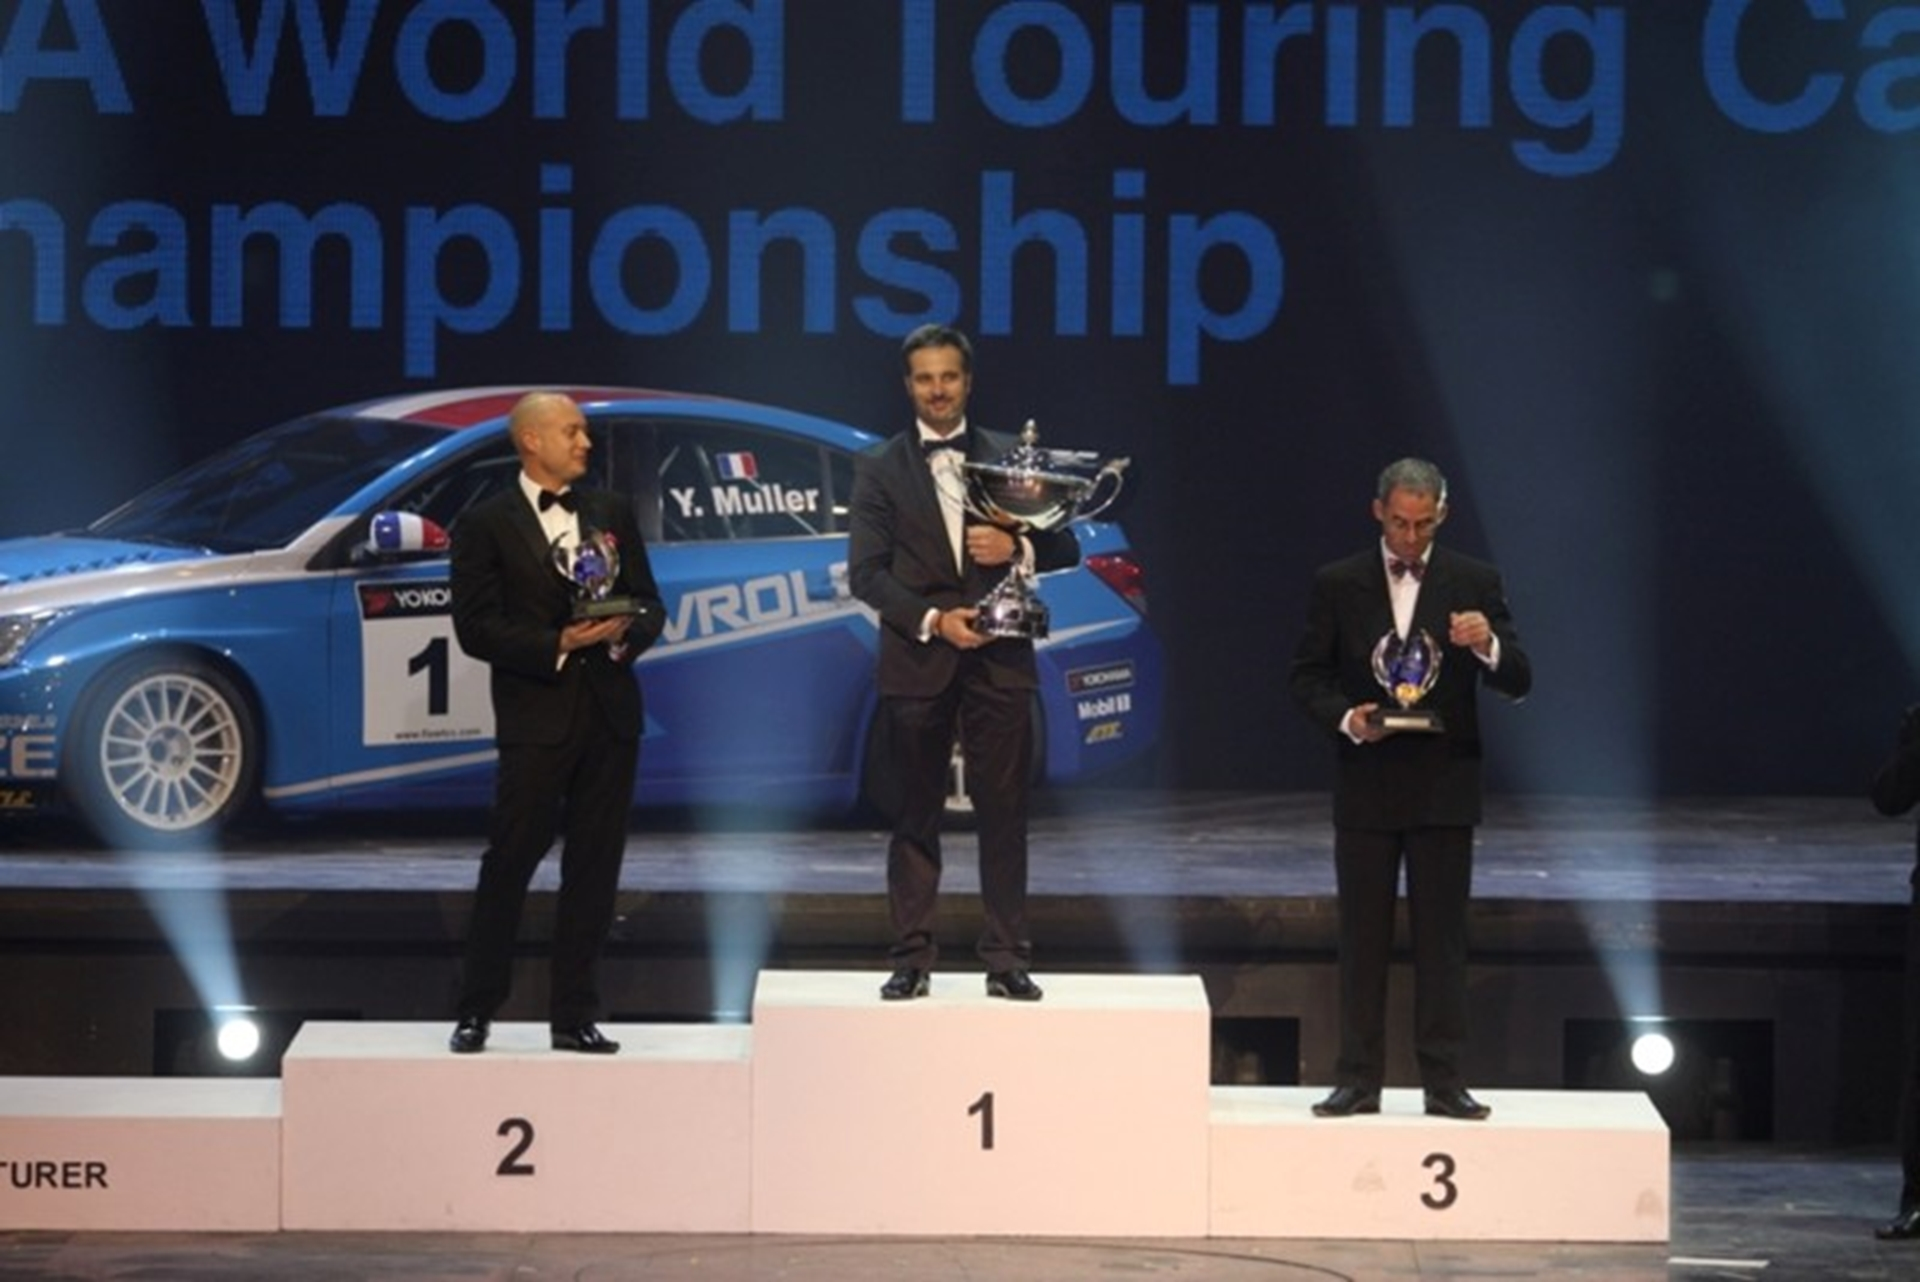 chevrolet-india-champs